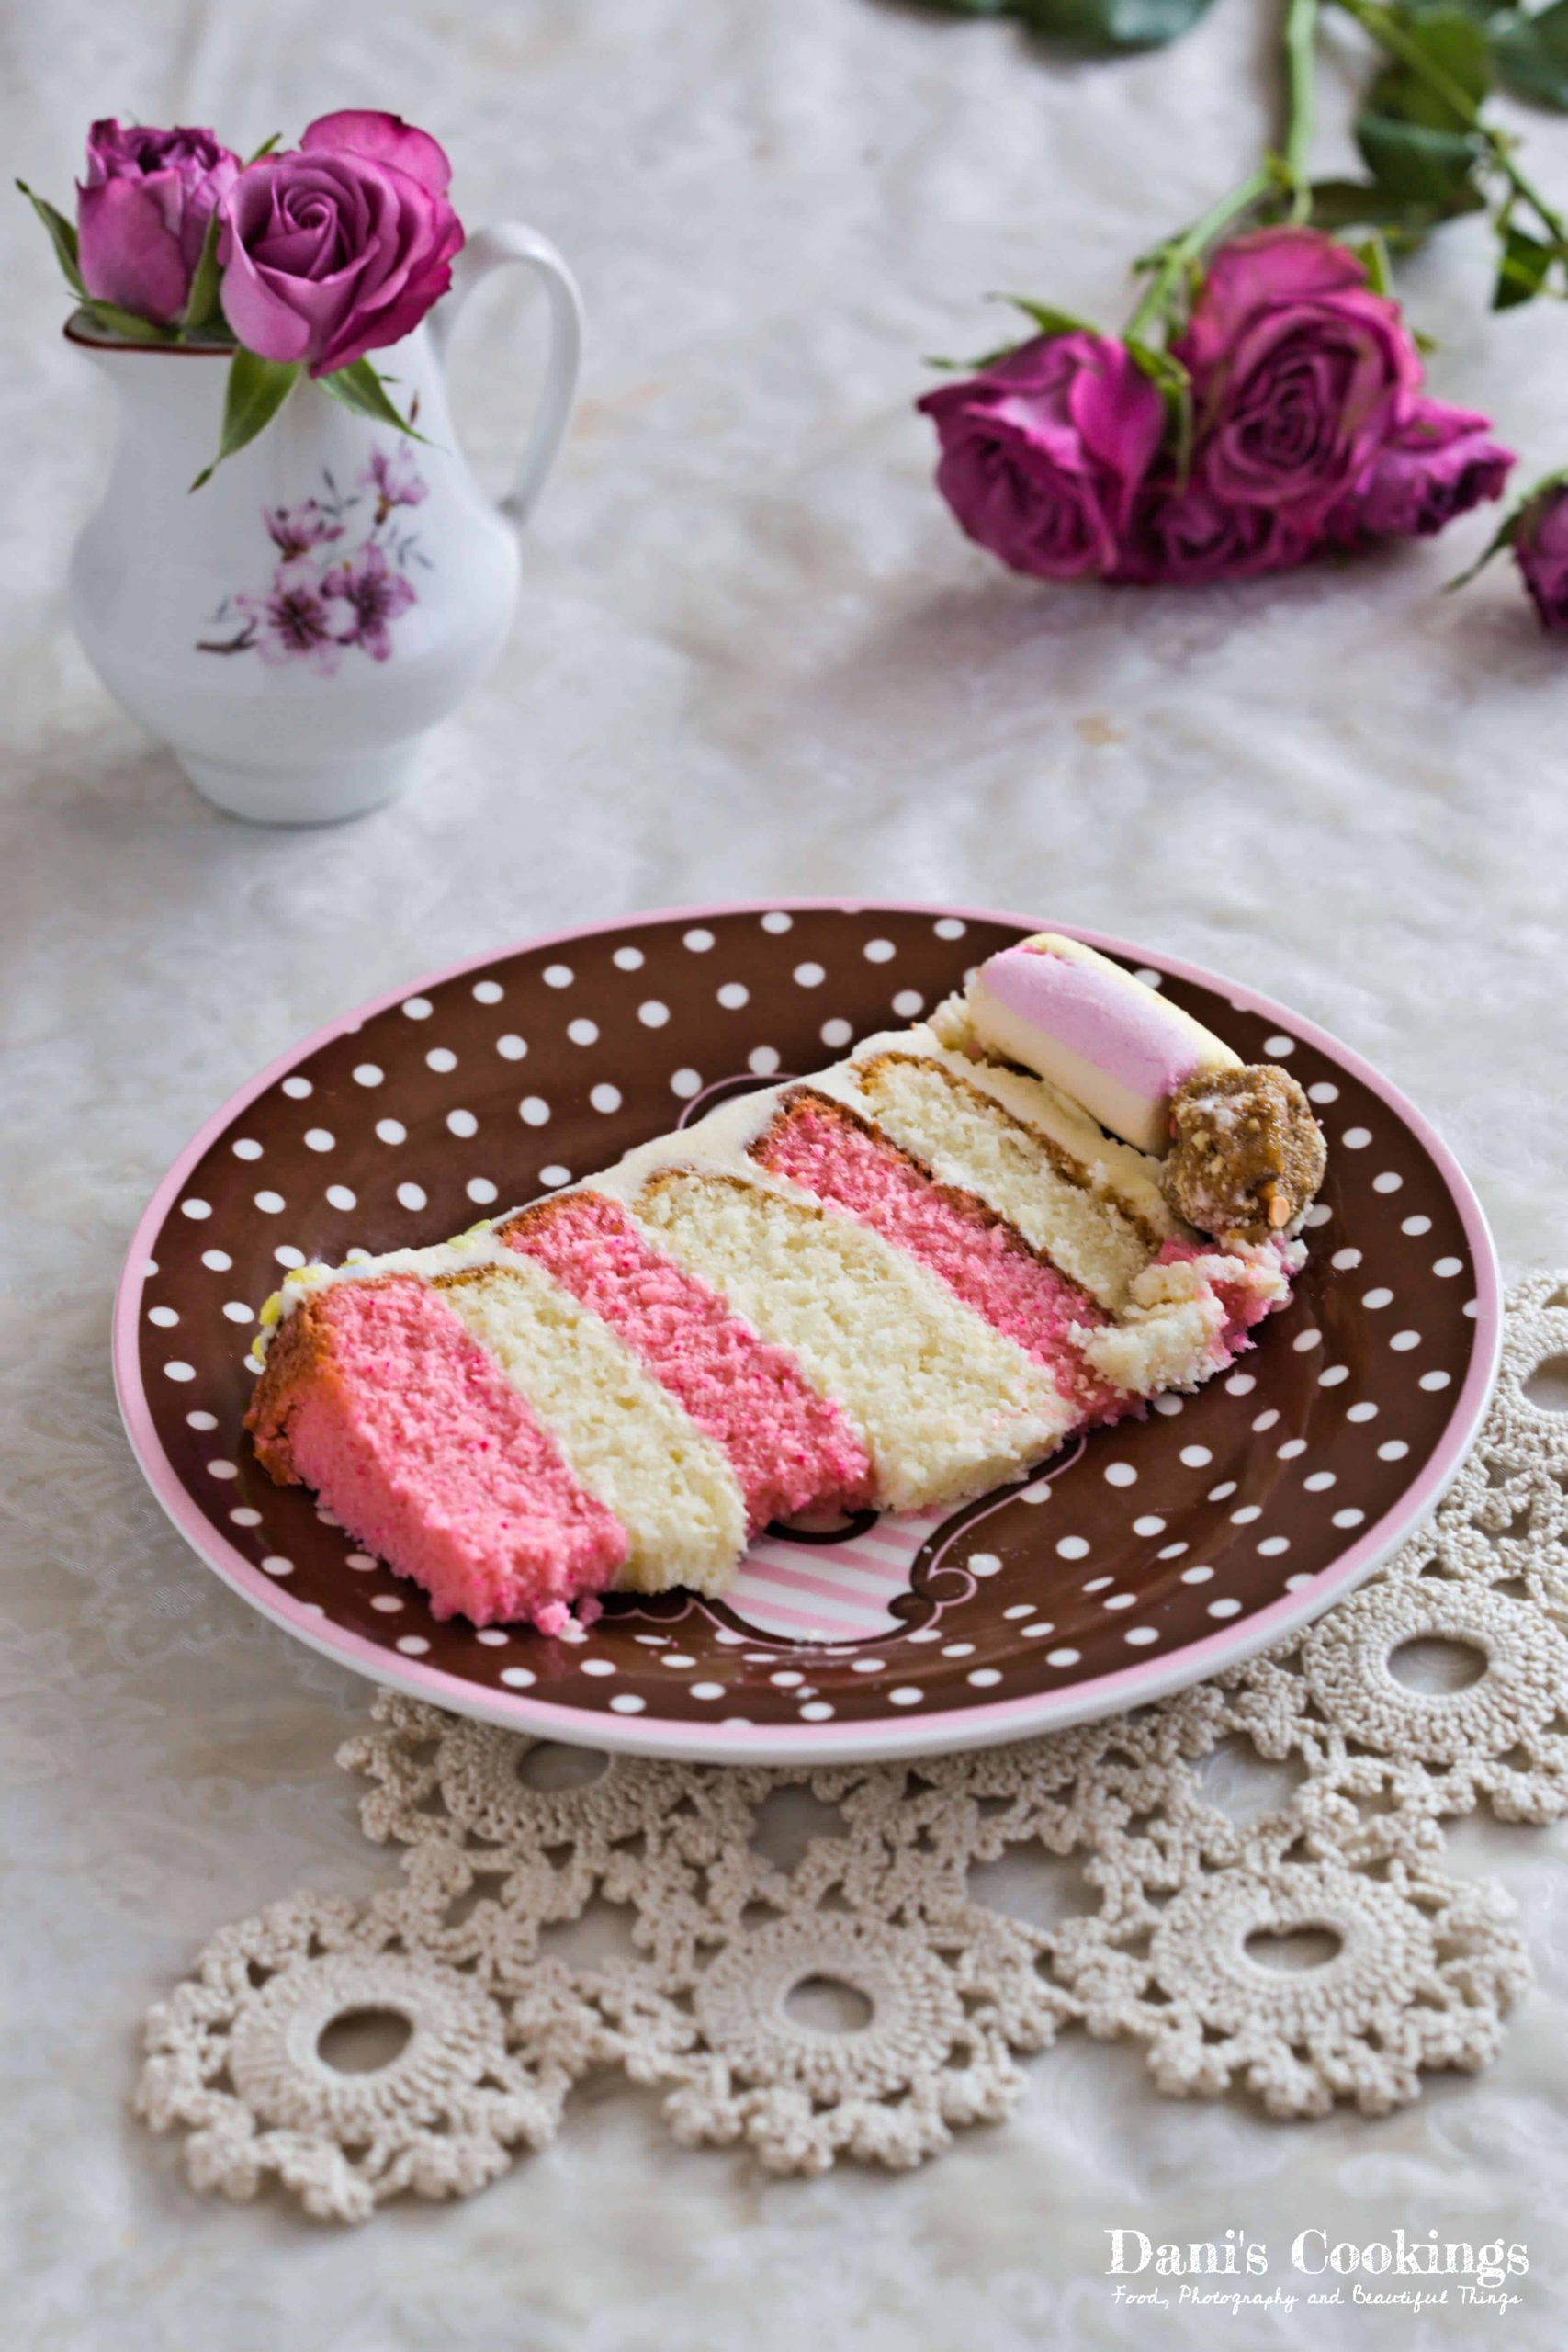 a slice of vanilla cake with pink and yellow layers on a plate with roses aside